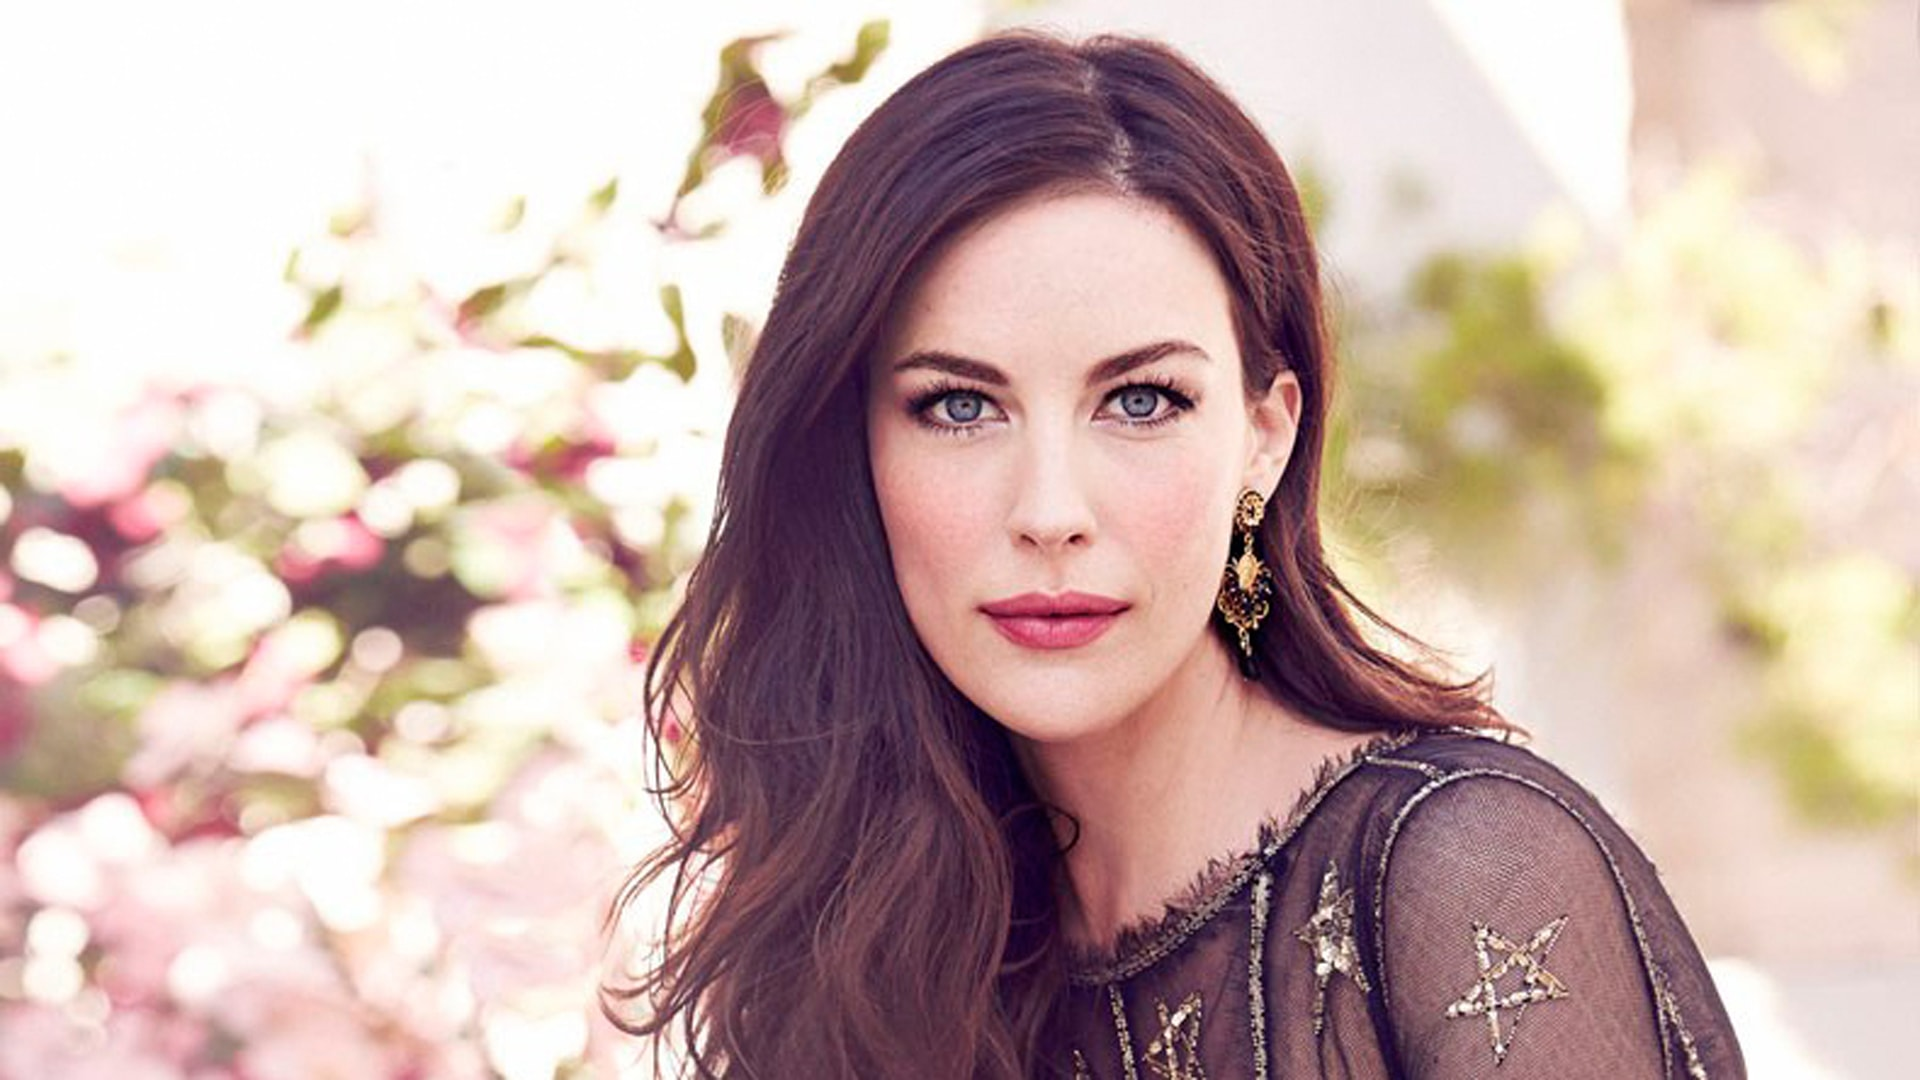 http://7wallpapers.net/wp-content/uploads/7_Liv-Tyler.jpg